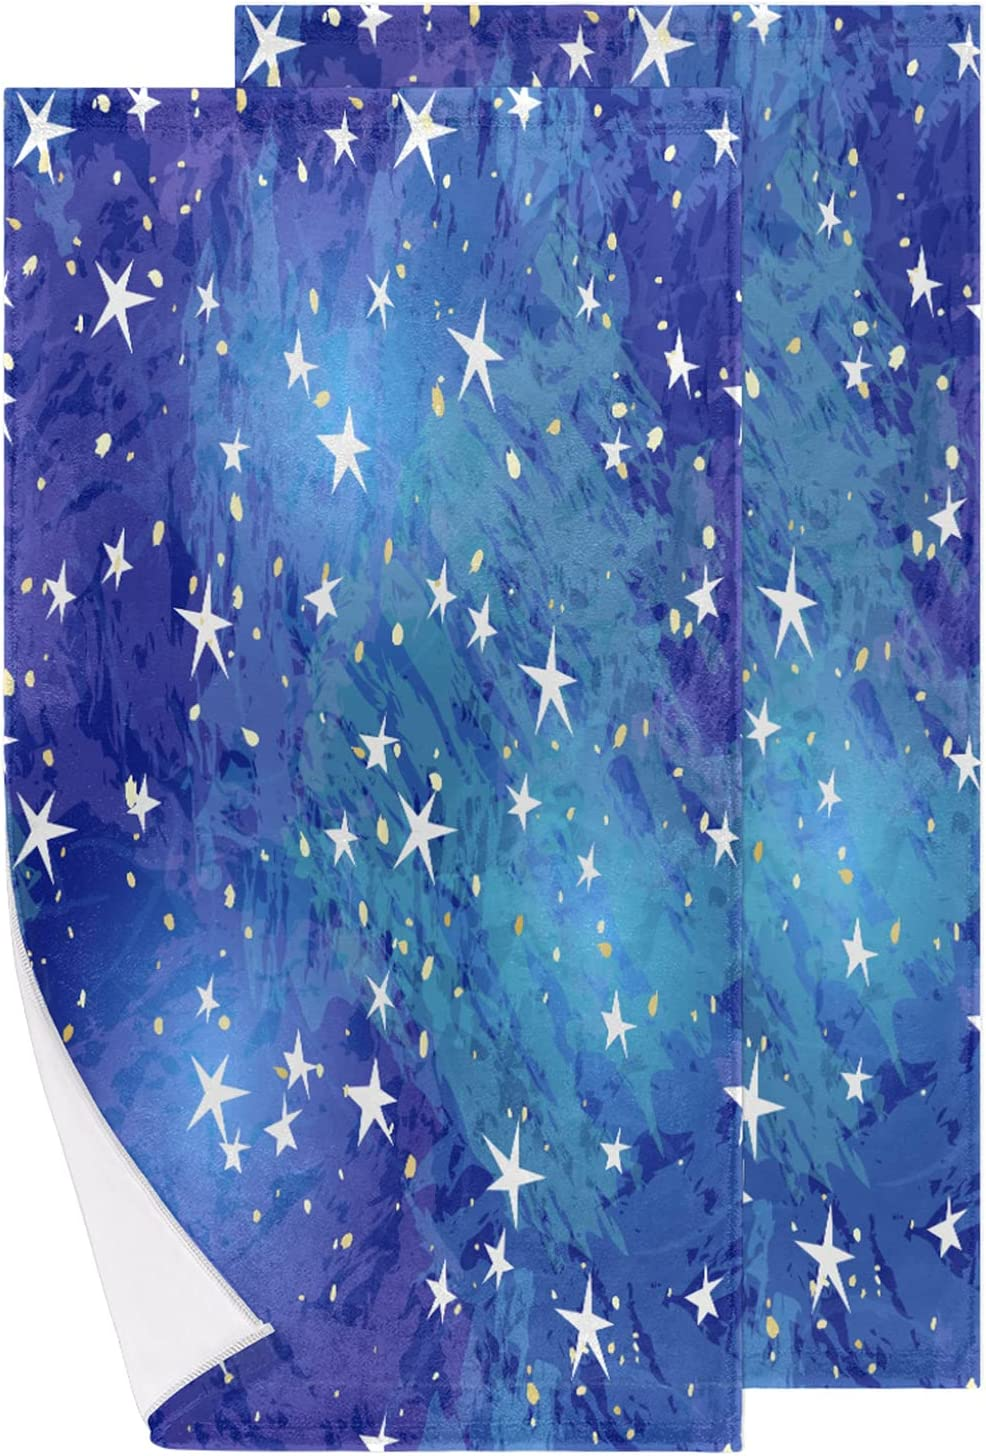 Starry Sky Hand Towels Set Cheap bargain Bath Soft of 2 Kitc Limited price